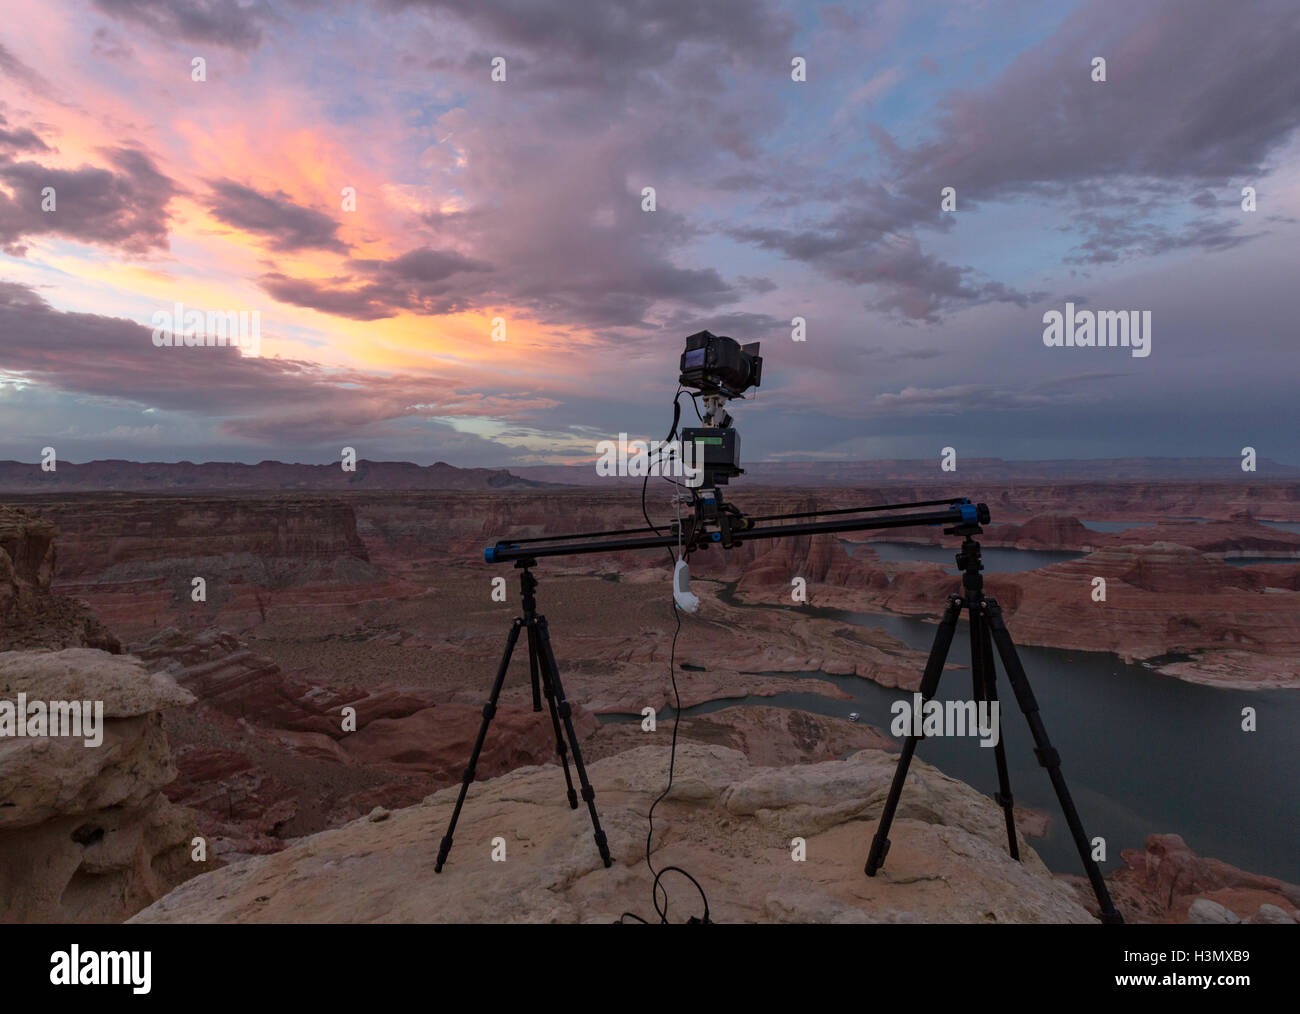 Camera on tripods photographing view of Lake Powell and canyons, Alstrom Point, Utah, USA - Stock Image